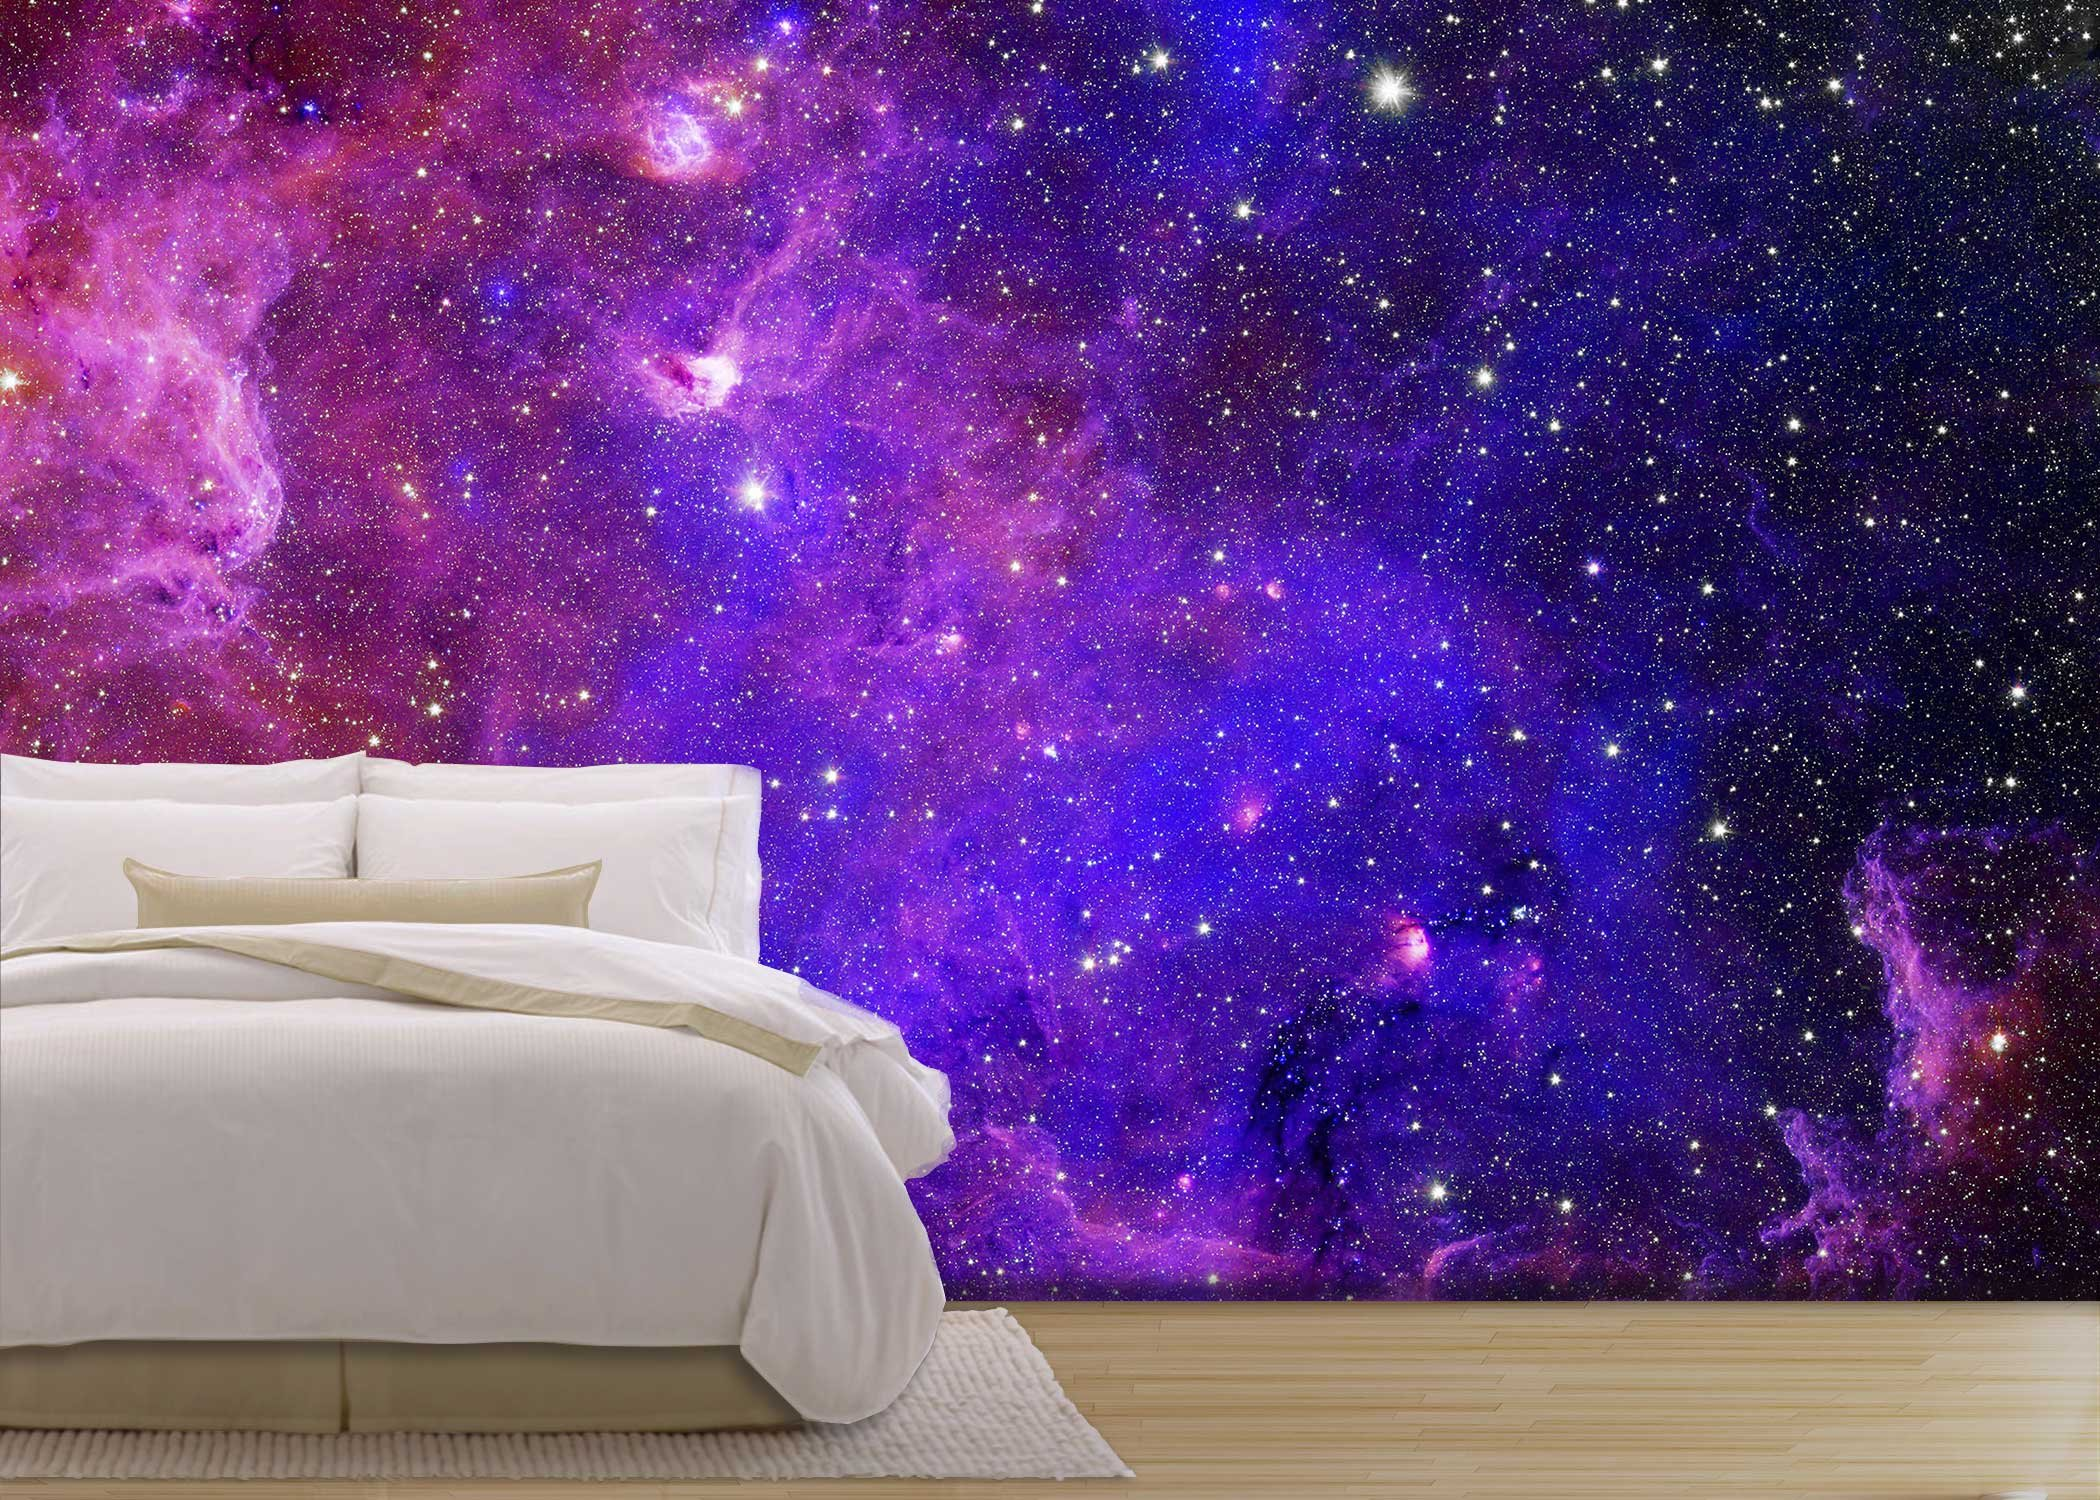 wall26 - Galaxy stars. Abstract space background. Elements of this image furnished by NASA - Removable Wall Mural | Self-adhesive Large Wallpaper - 100x144 inches